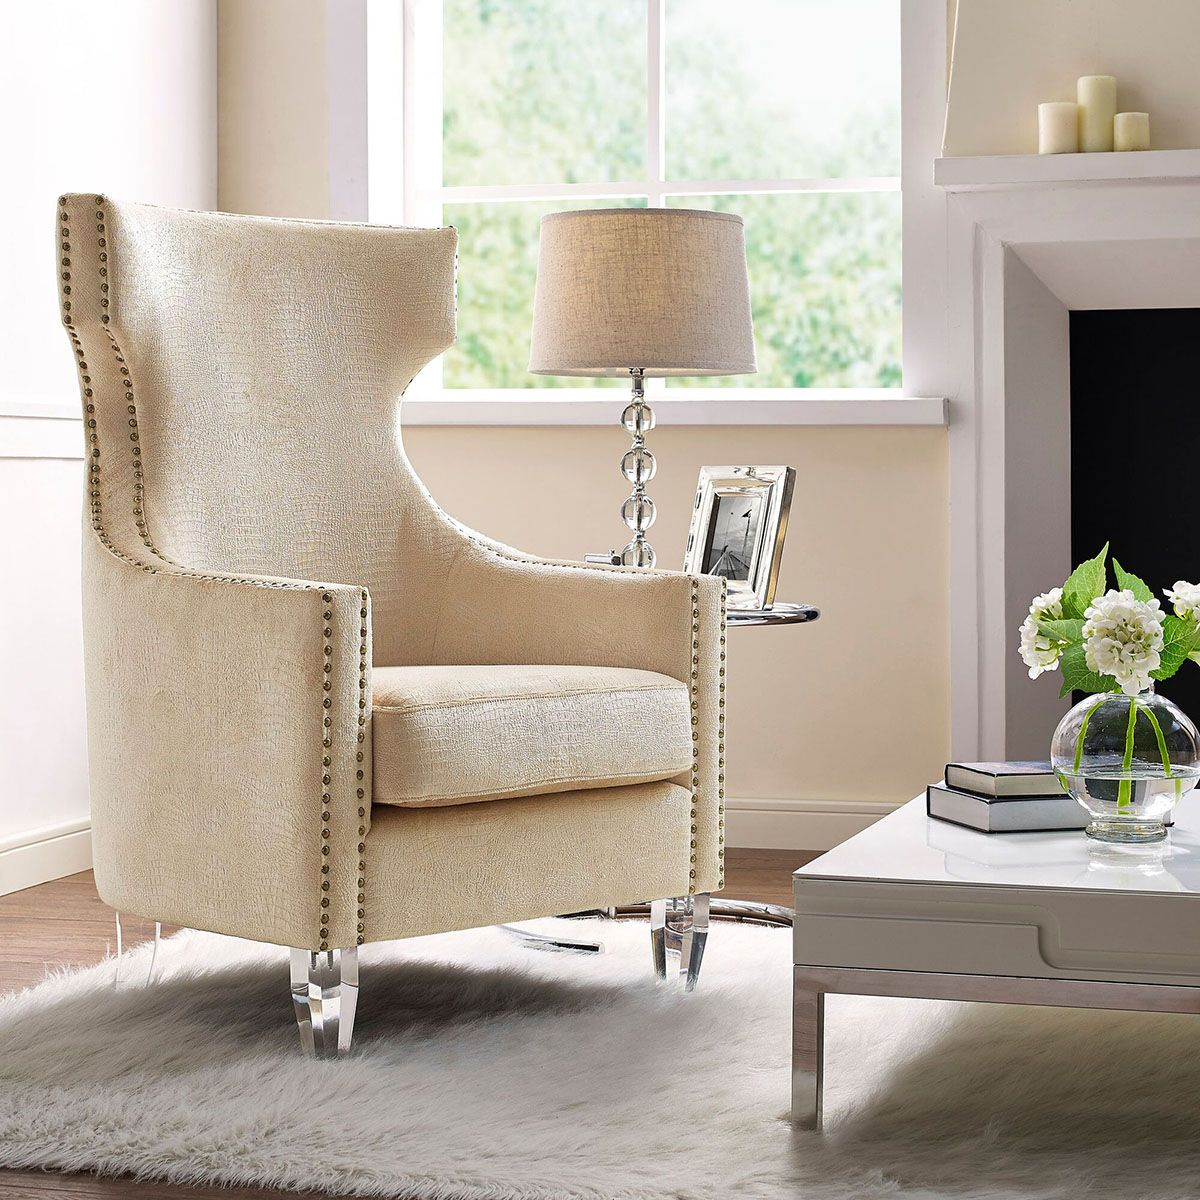 Wing Chairs For Living Room Gramercy Wing Chair In Gold Croc By Tov Accent Chairs By Tov